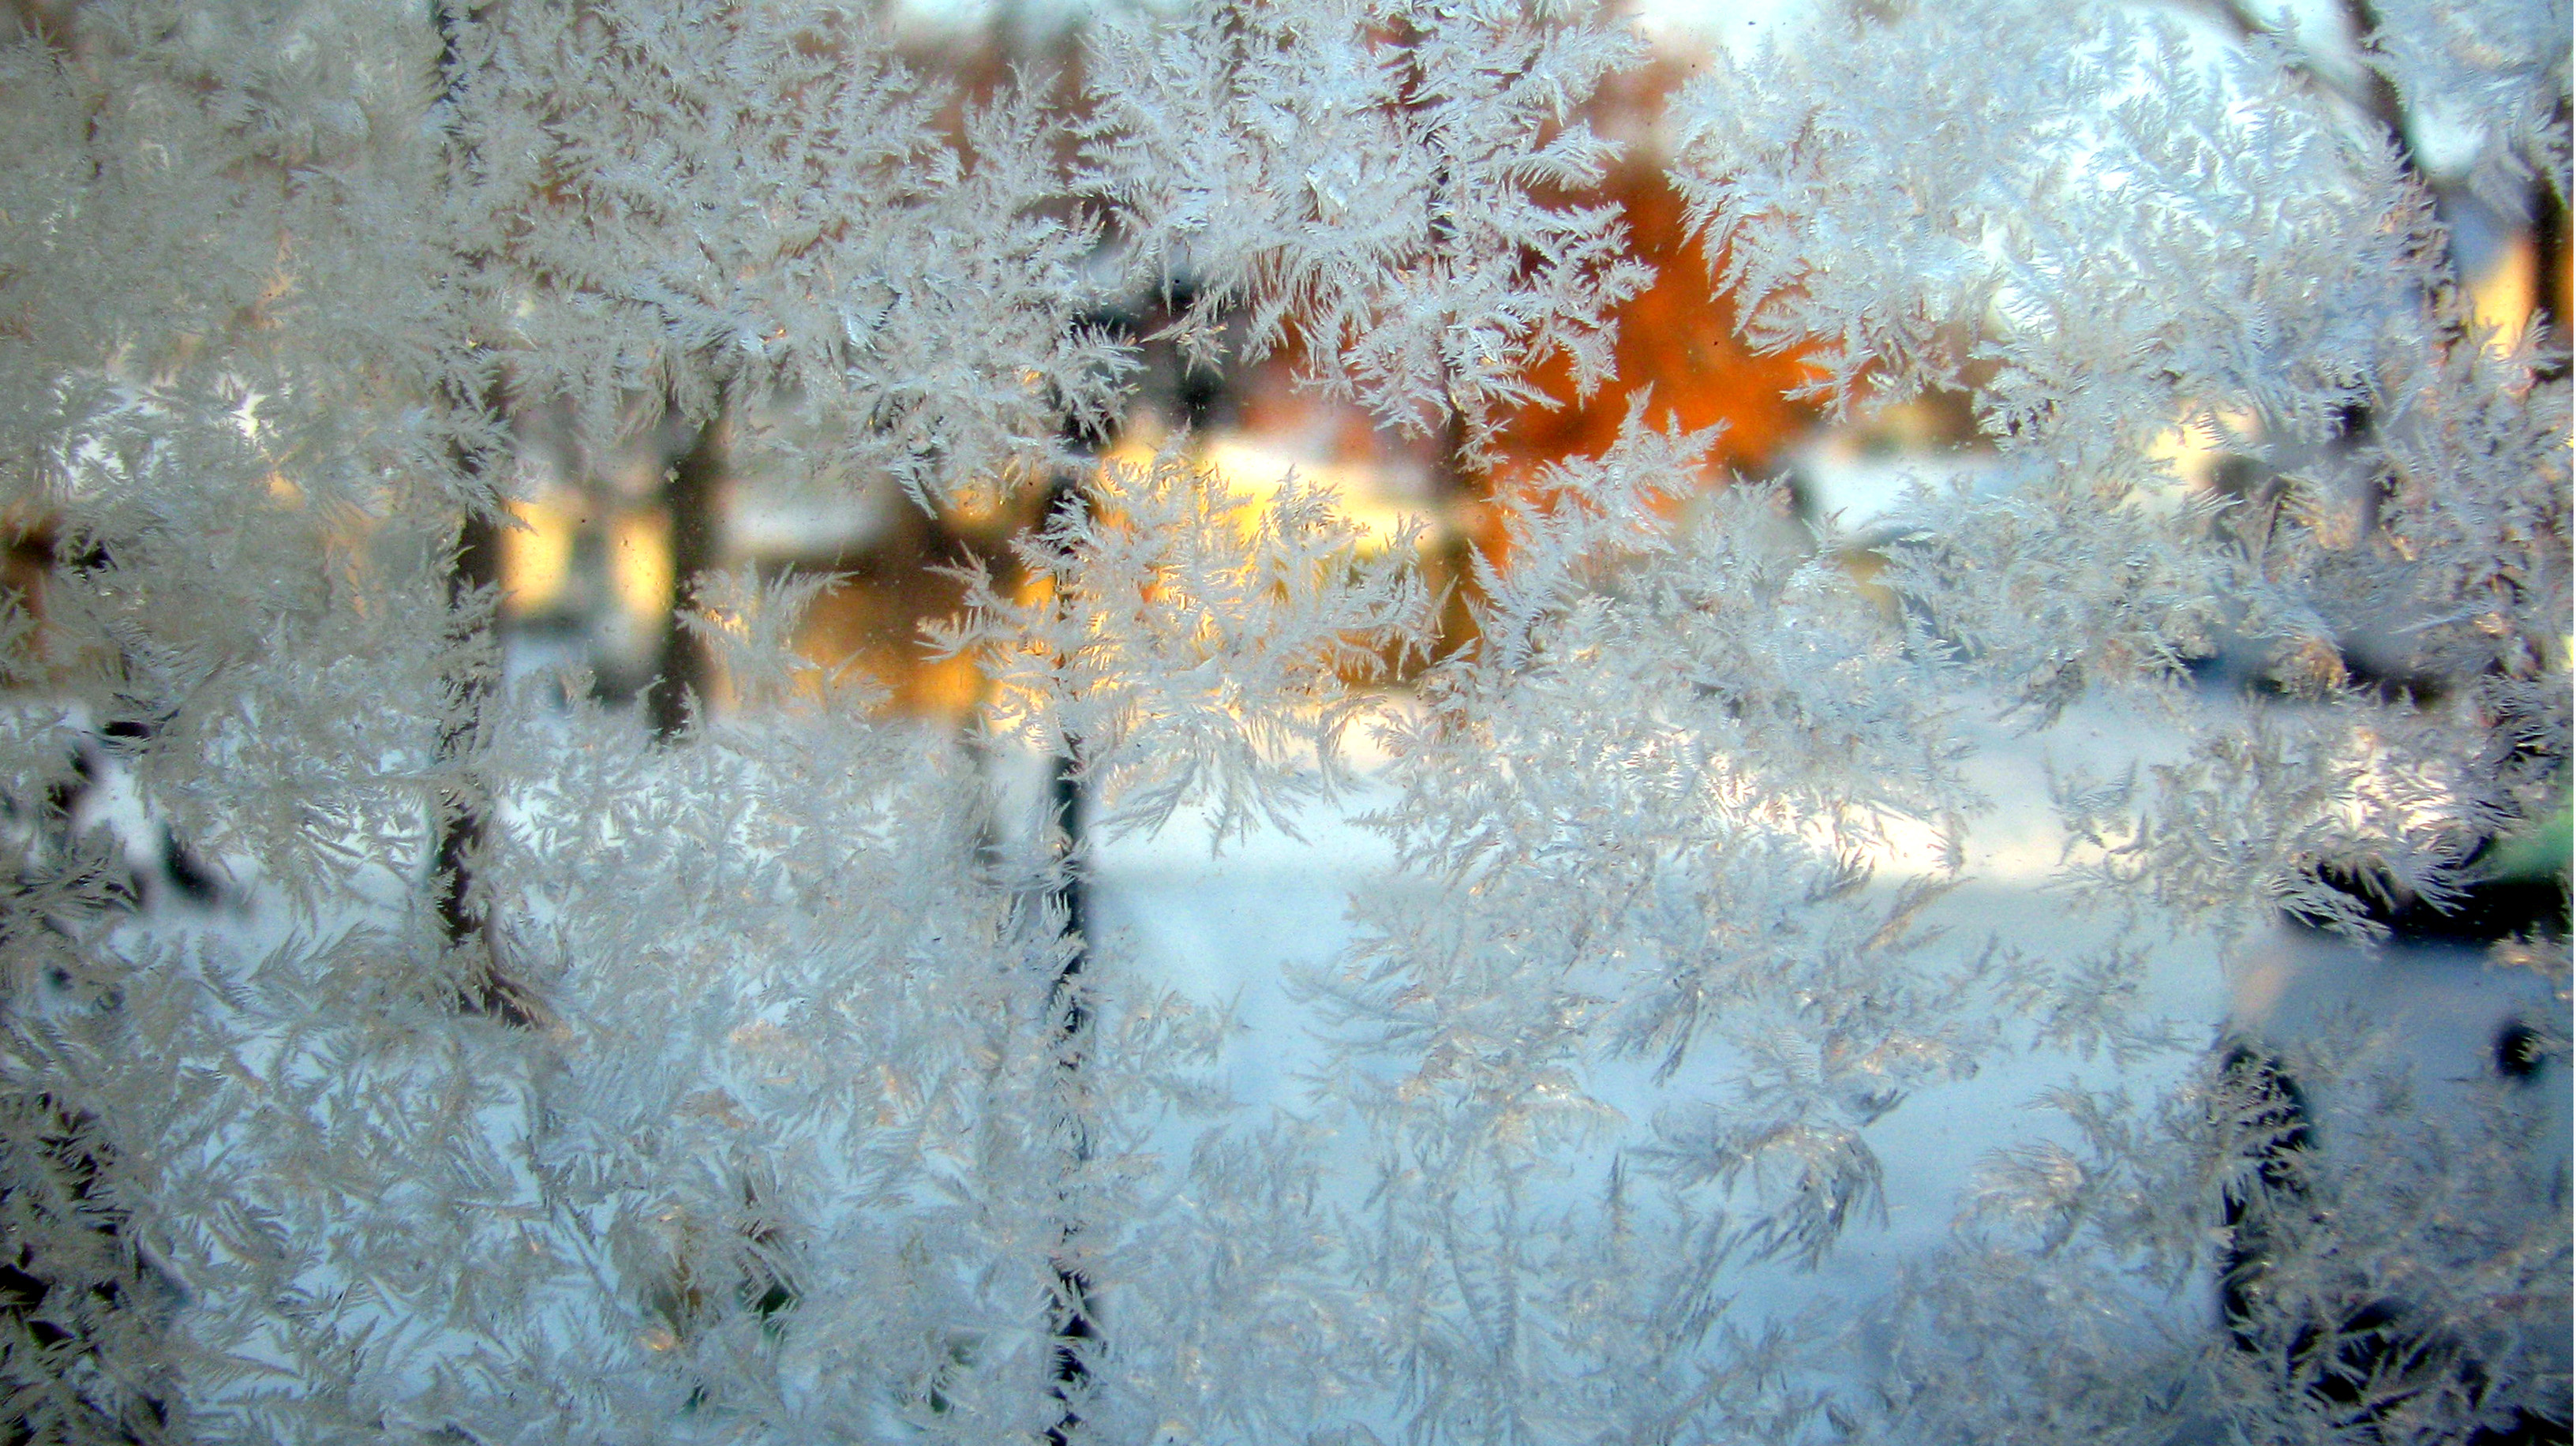 Frosted window 4 by callmexntrick on deviantart for Window frosting